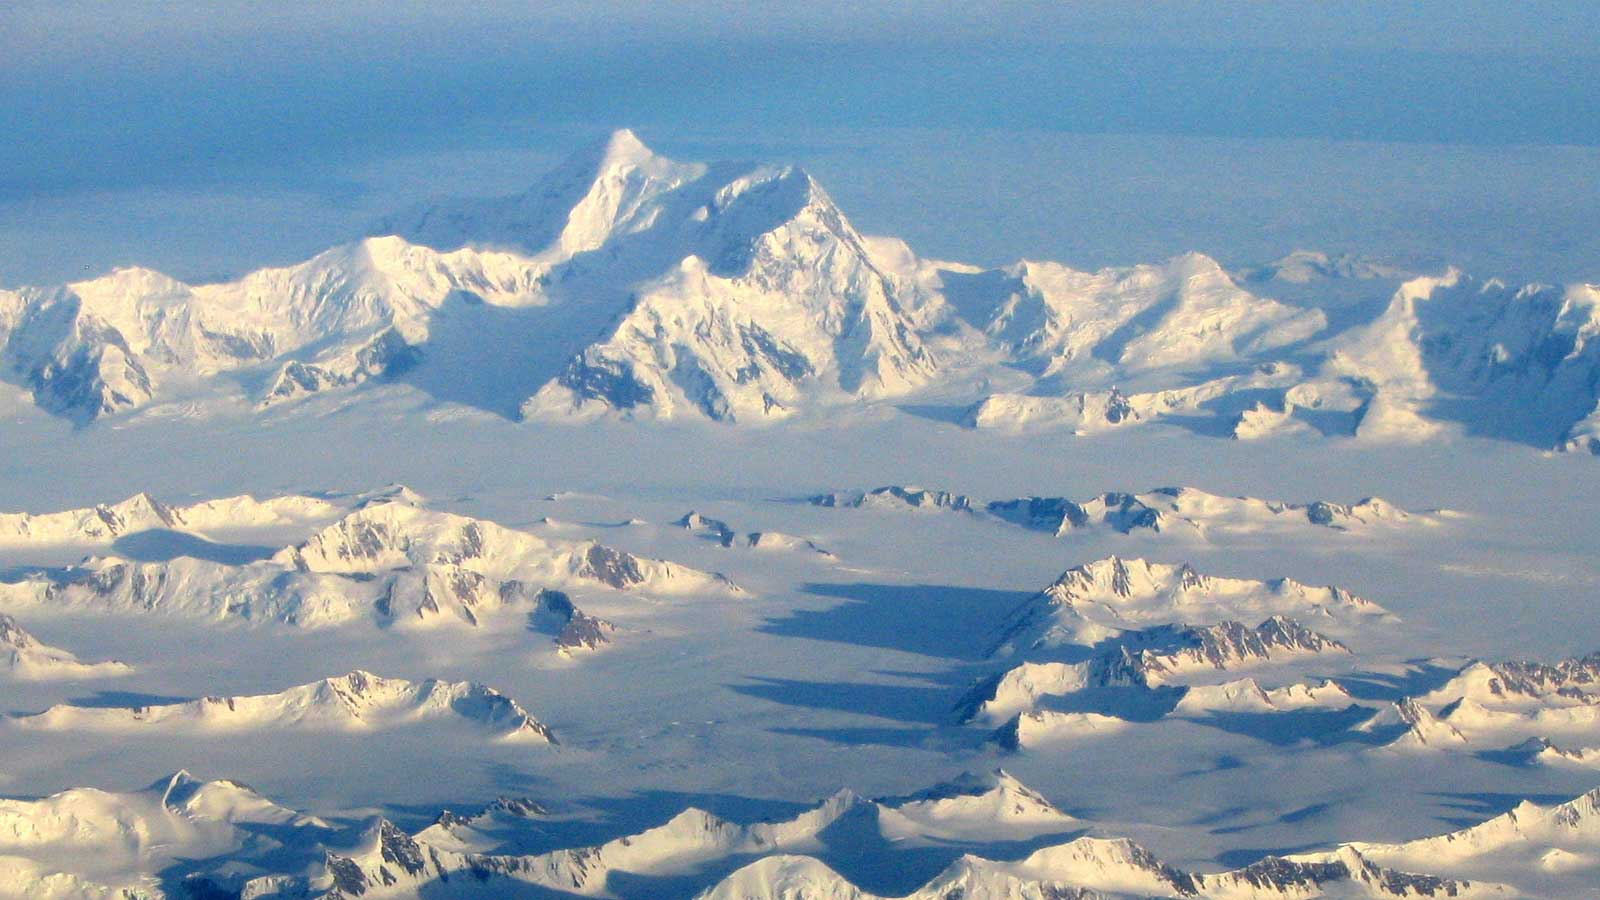 Wrangell St. Elias from the air